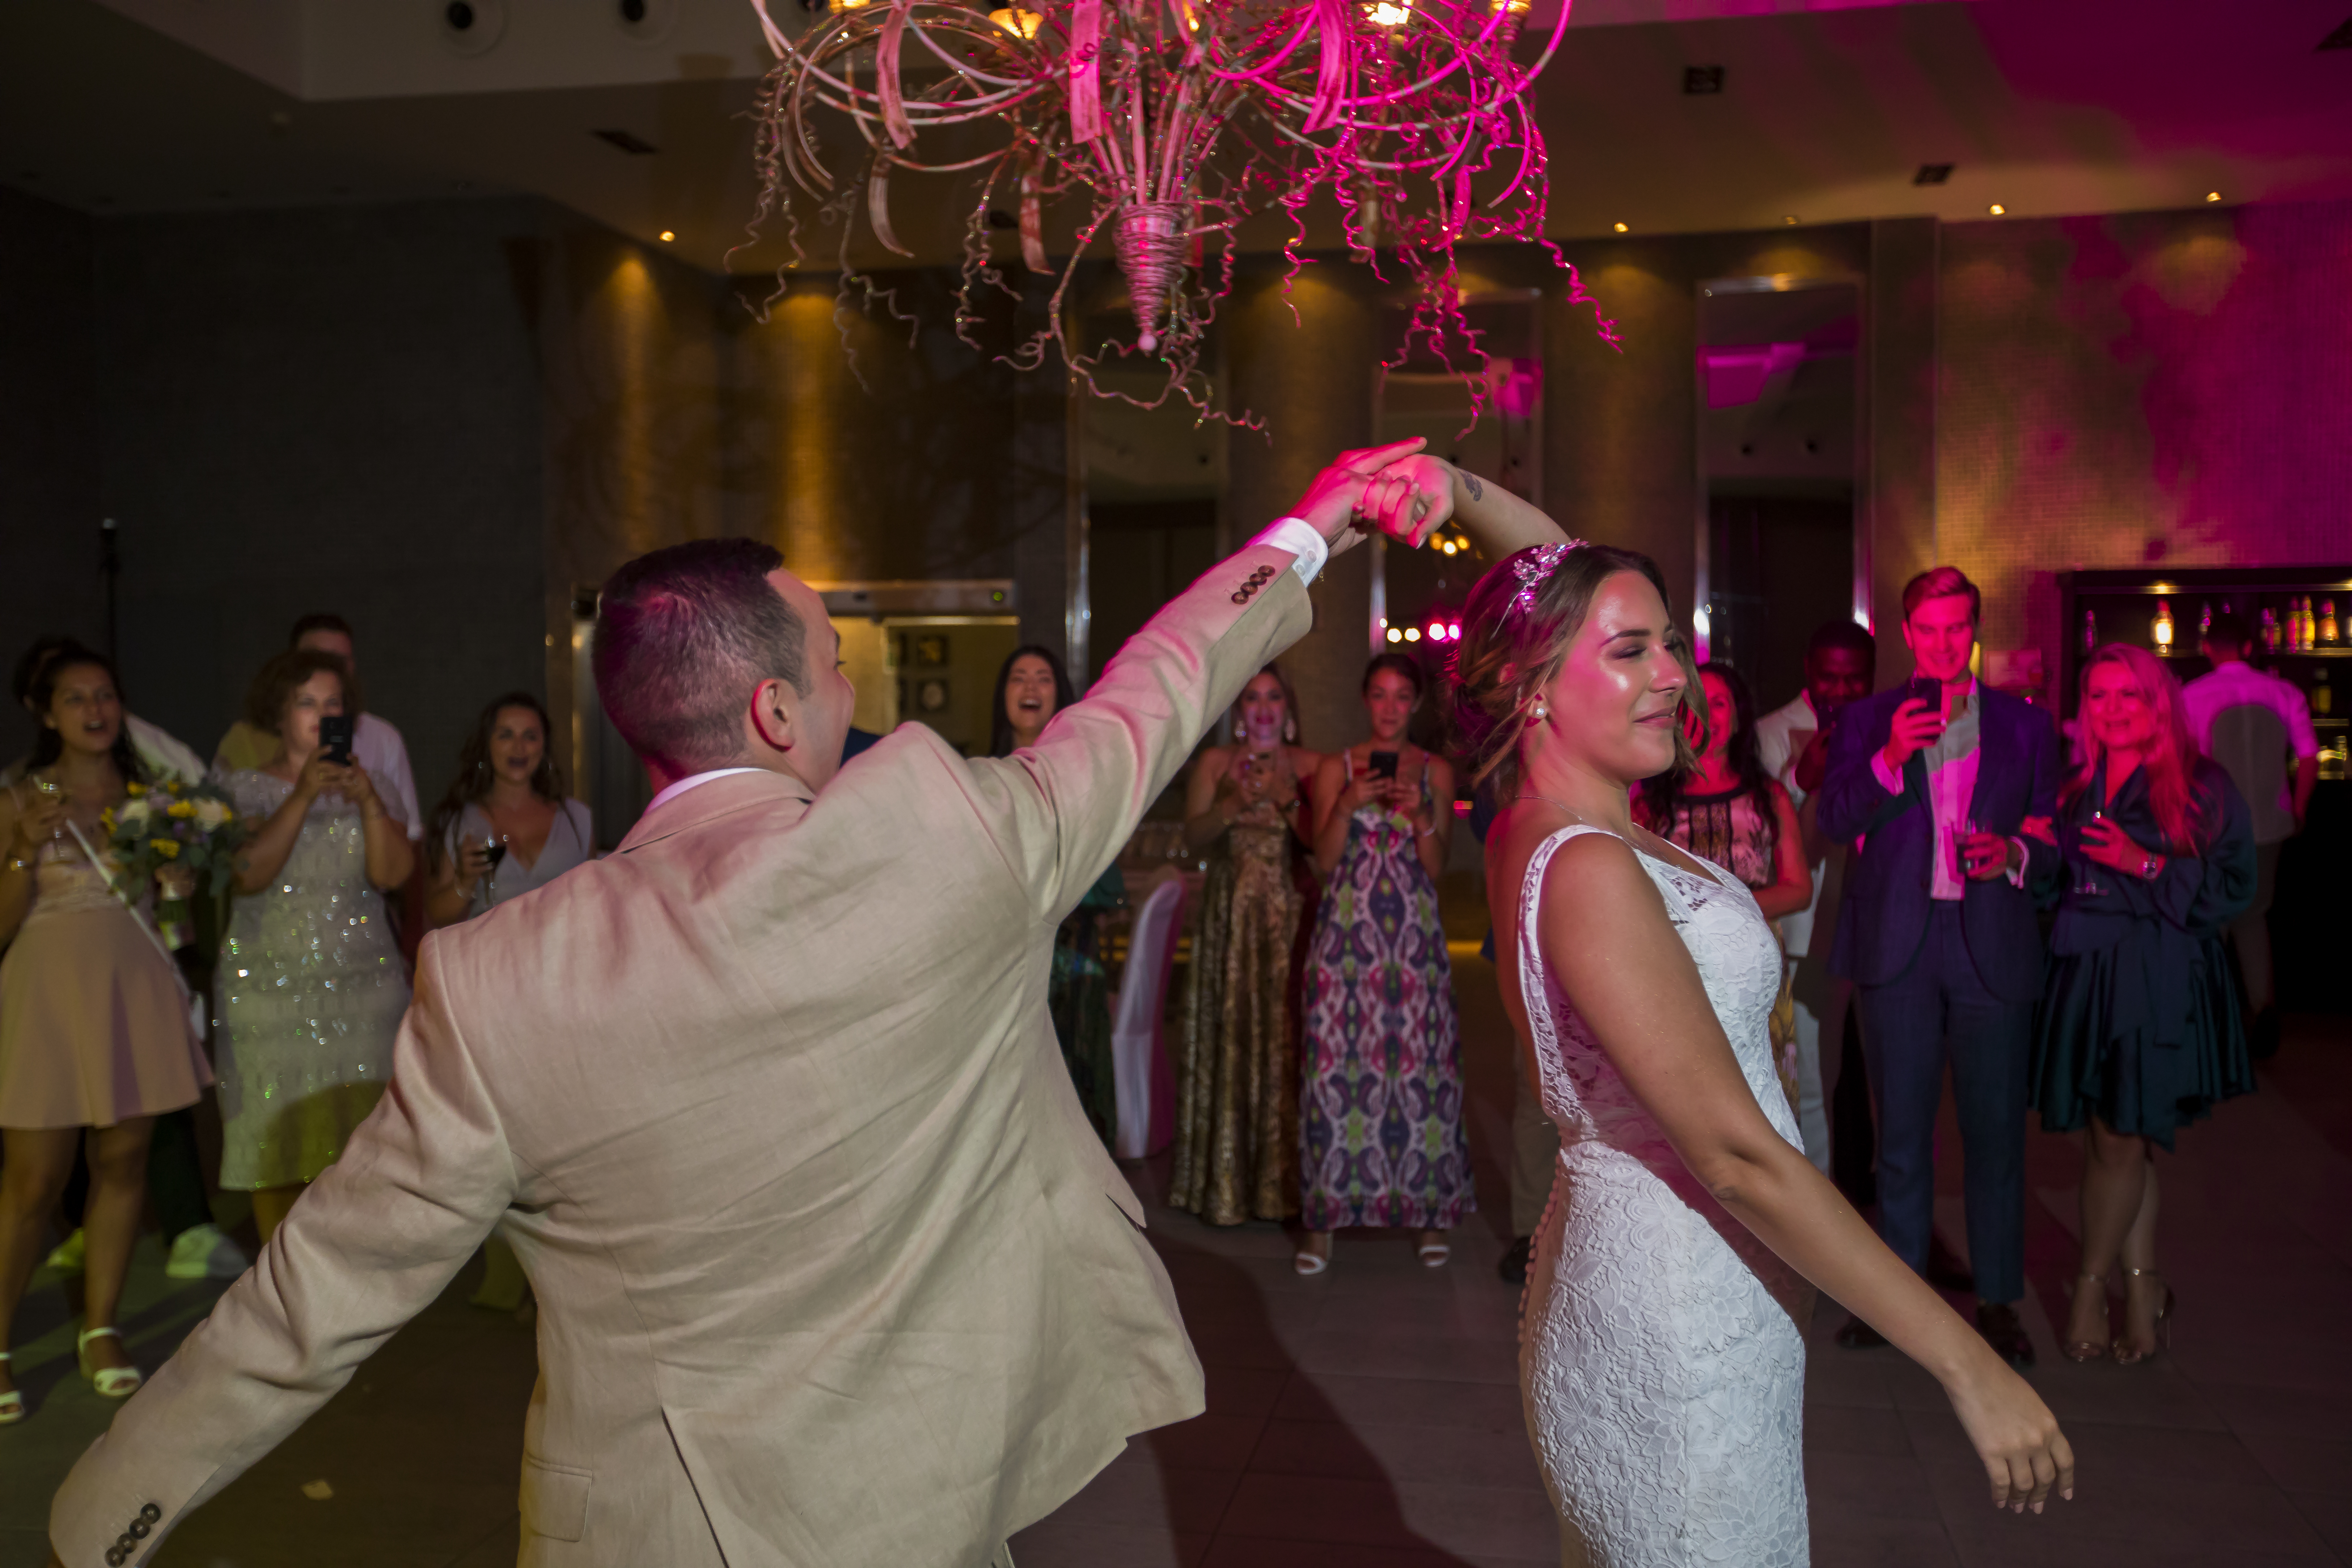 The bride and groom take to the dance floor in the beach club's party room room